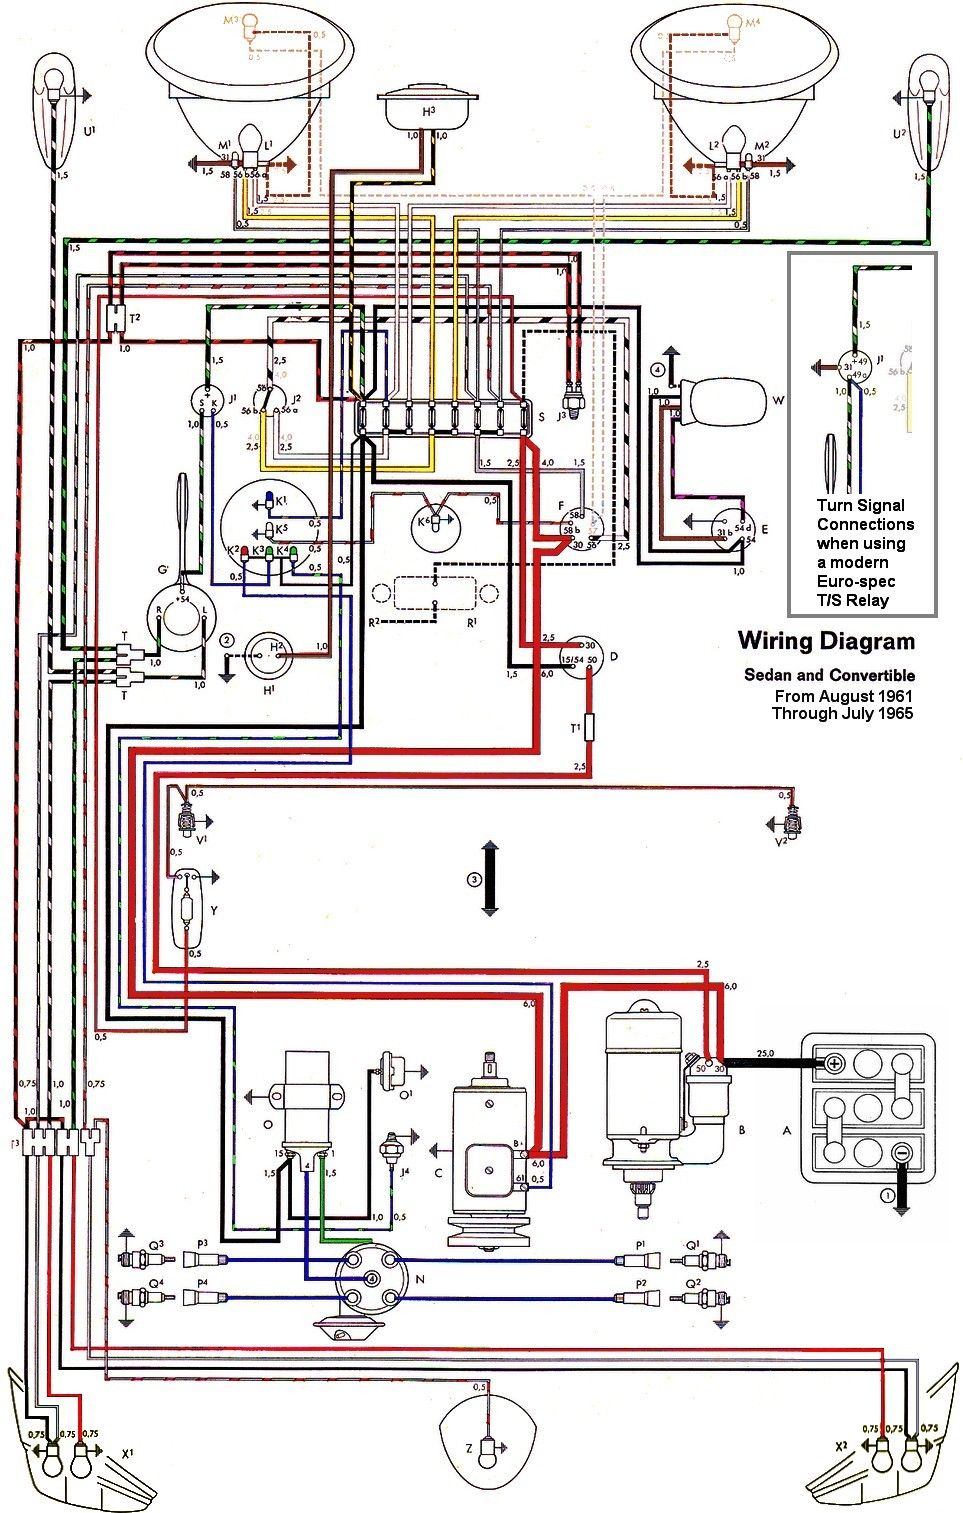 wiring diagram vw beetle sedan and convertible 1961 1965 [ 963 x 1513 Pixel ]